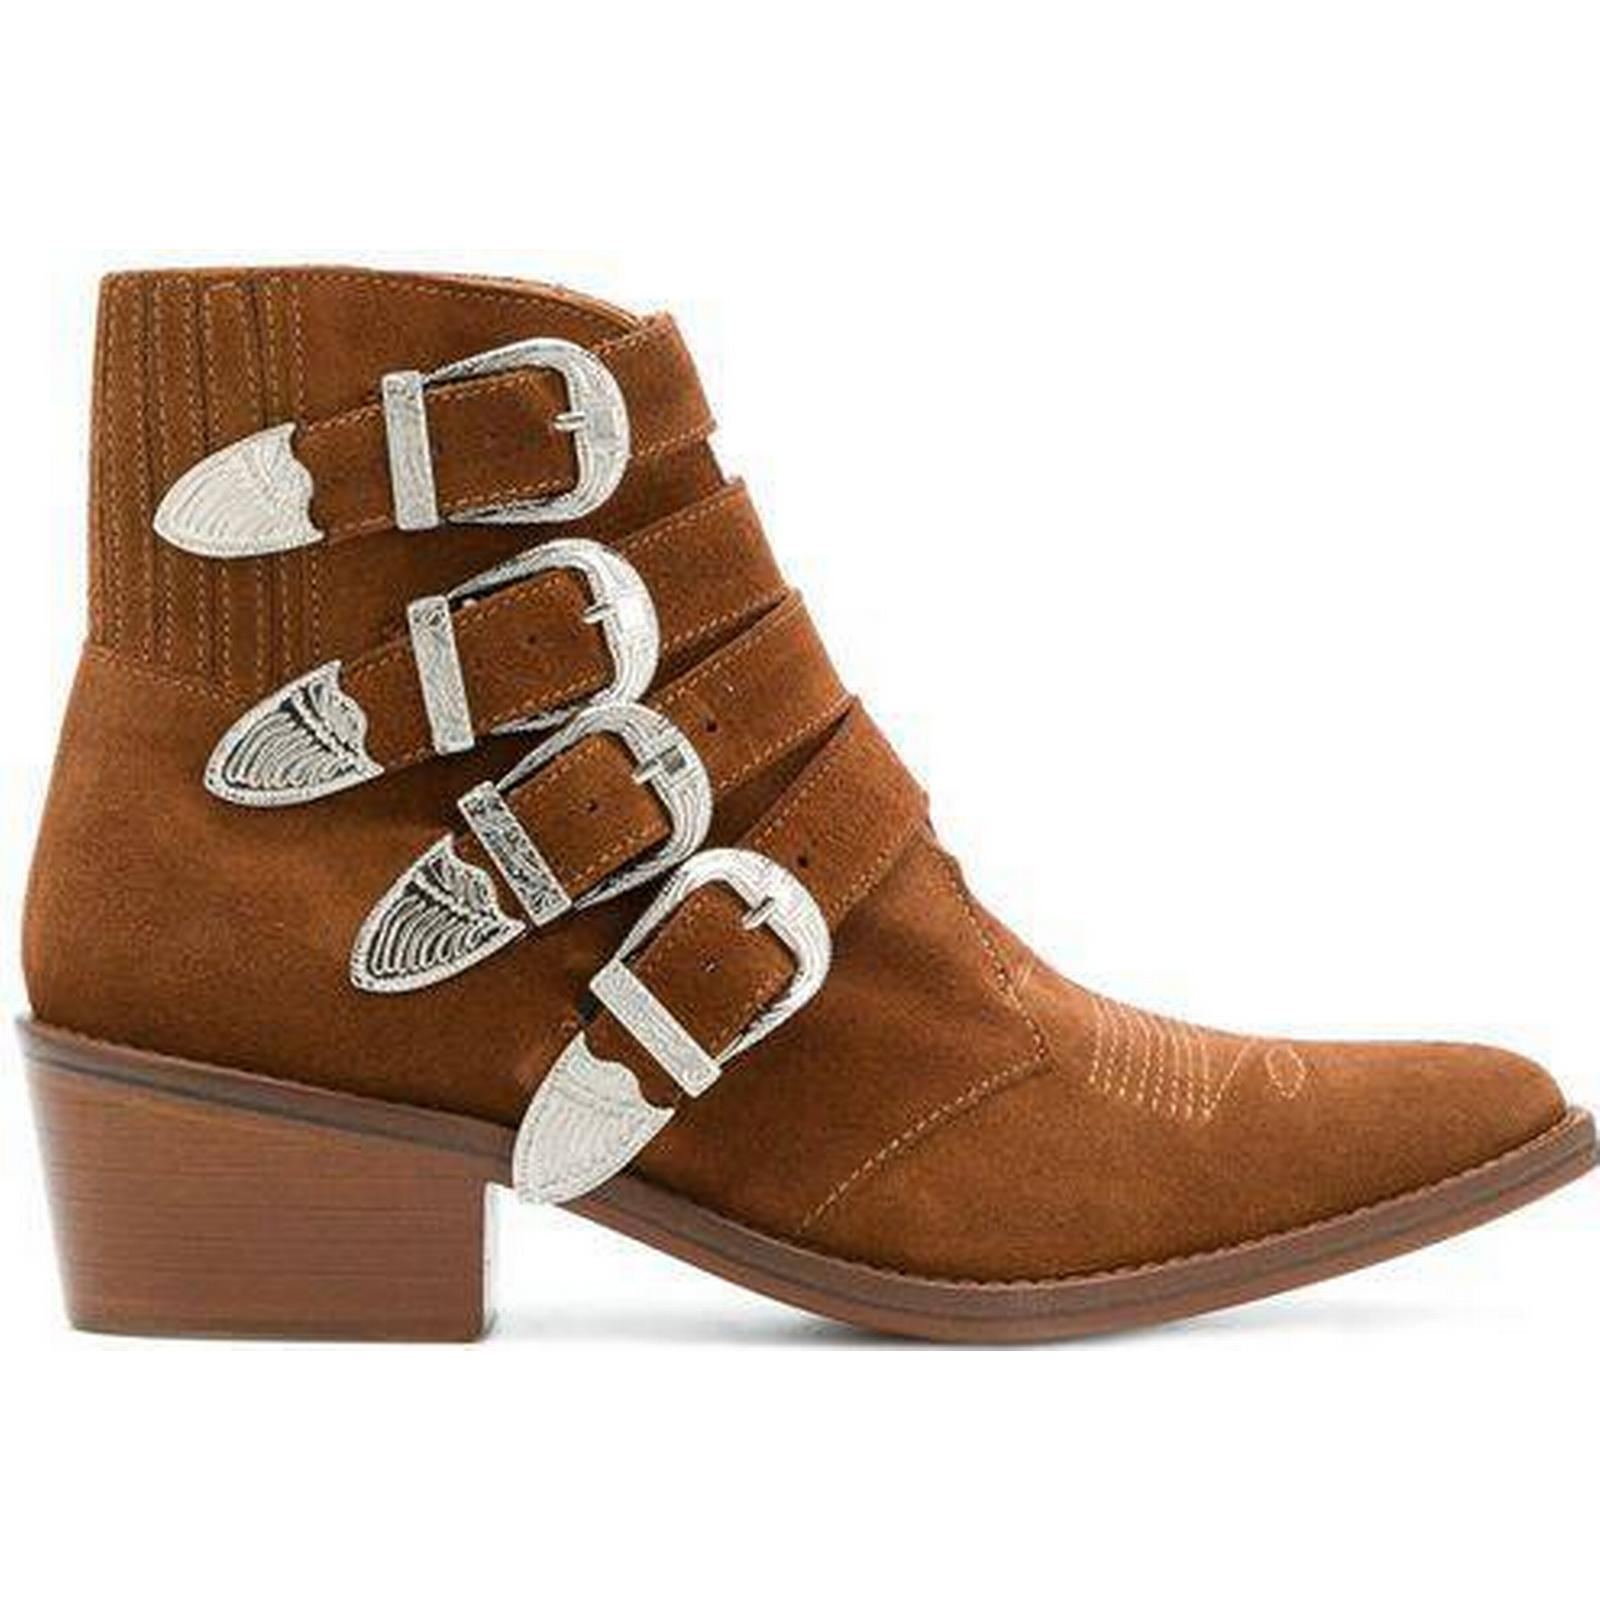 Toga Pulla Boots 'Buckle Strap' Suede Ankle Boots Pulla COGNAC SUEDE a5a32a